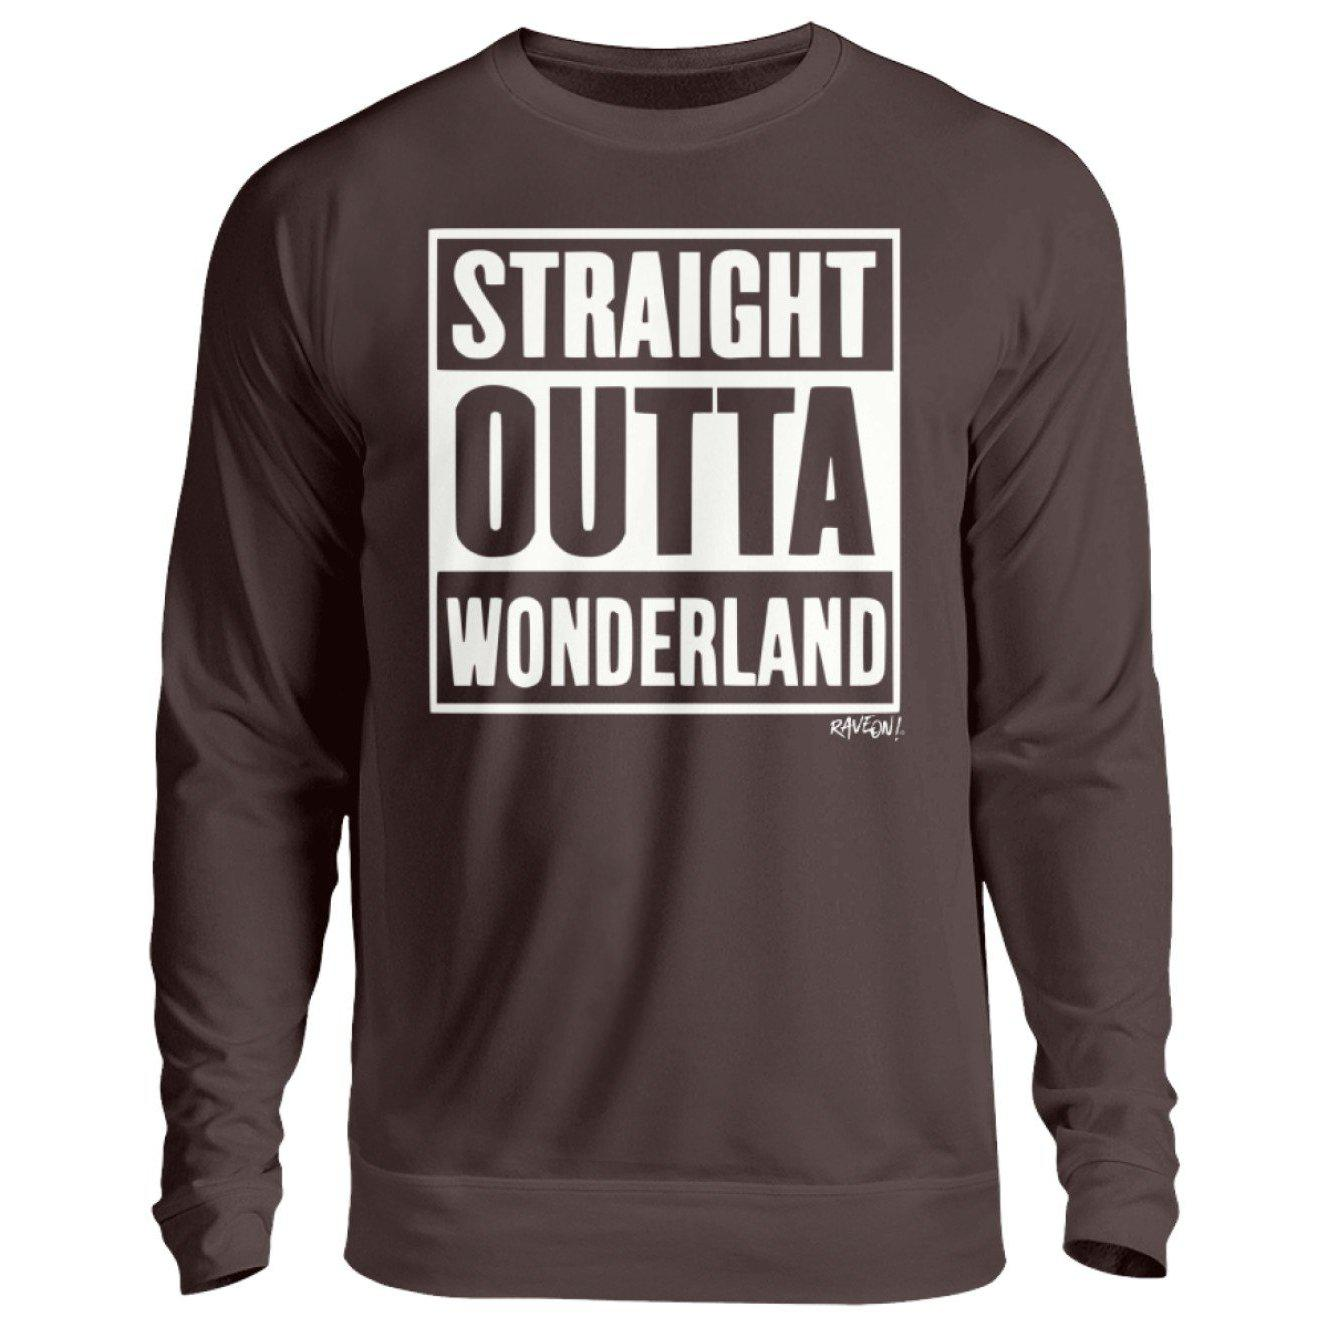 STRAIGHT OUTTA WONDERLAND black - Rave On!® - Unisex Pullover Unisex Sweatshirt Hot Chocolate / S - Rave On!® der Club & Techno Szene Shop für Coole Junge Mode Streetwear Style & Fashion Outfits + Sexy Festival 420 Stuff